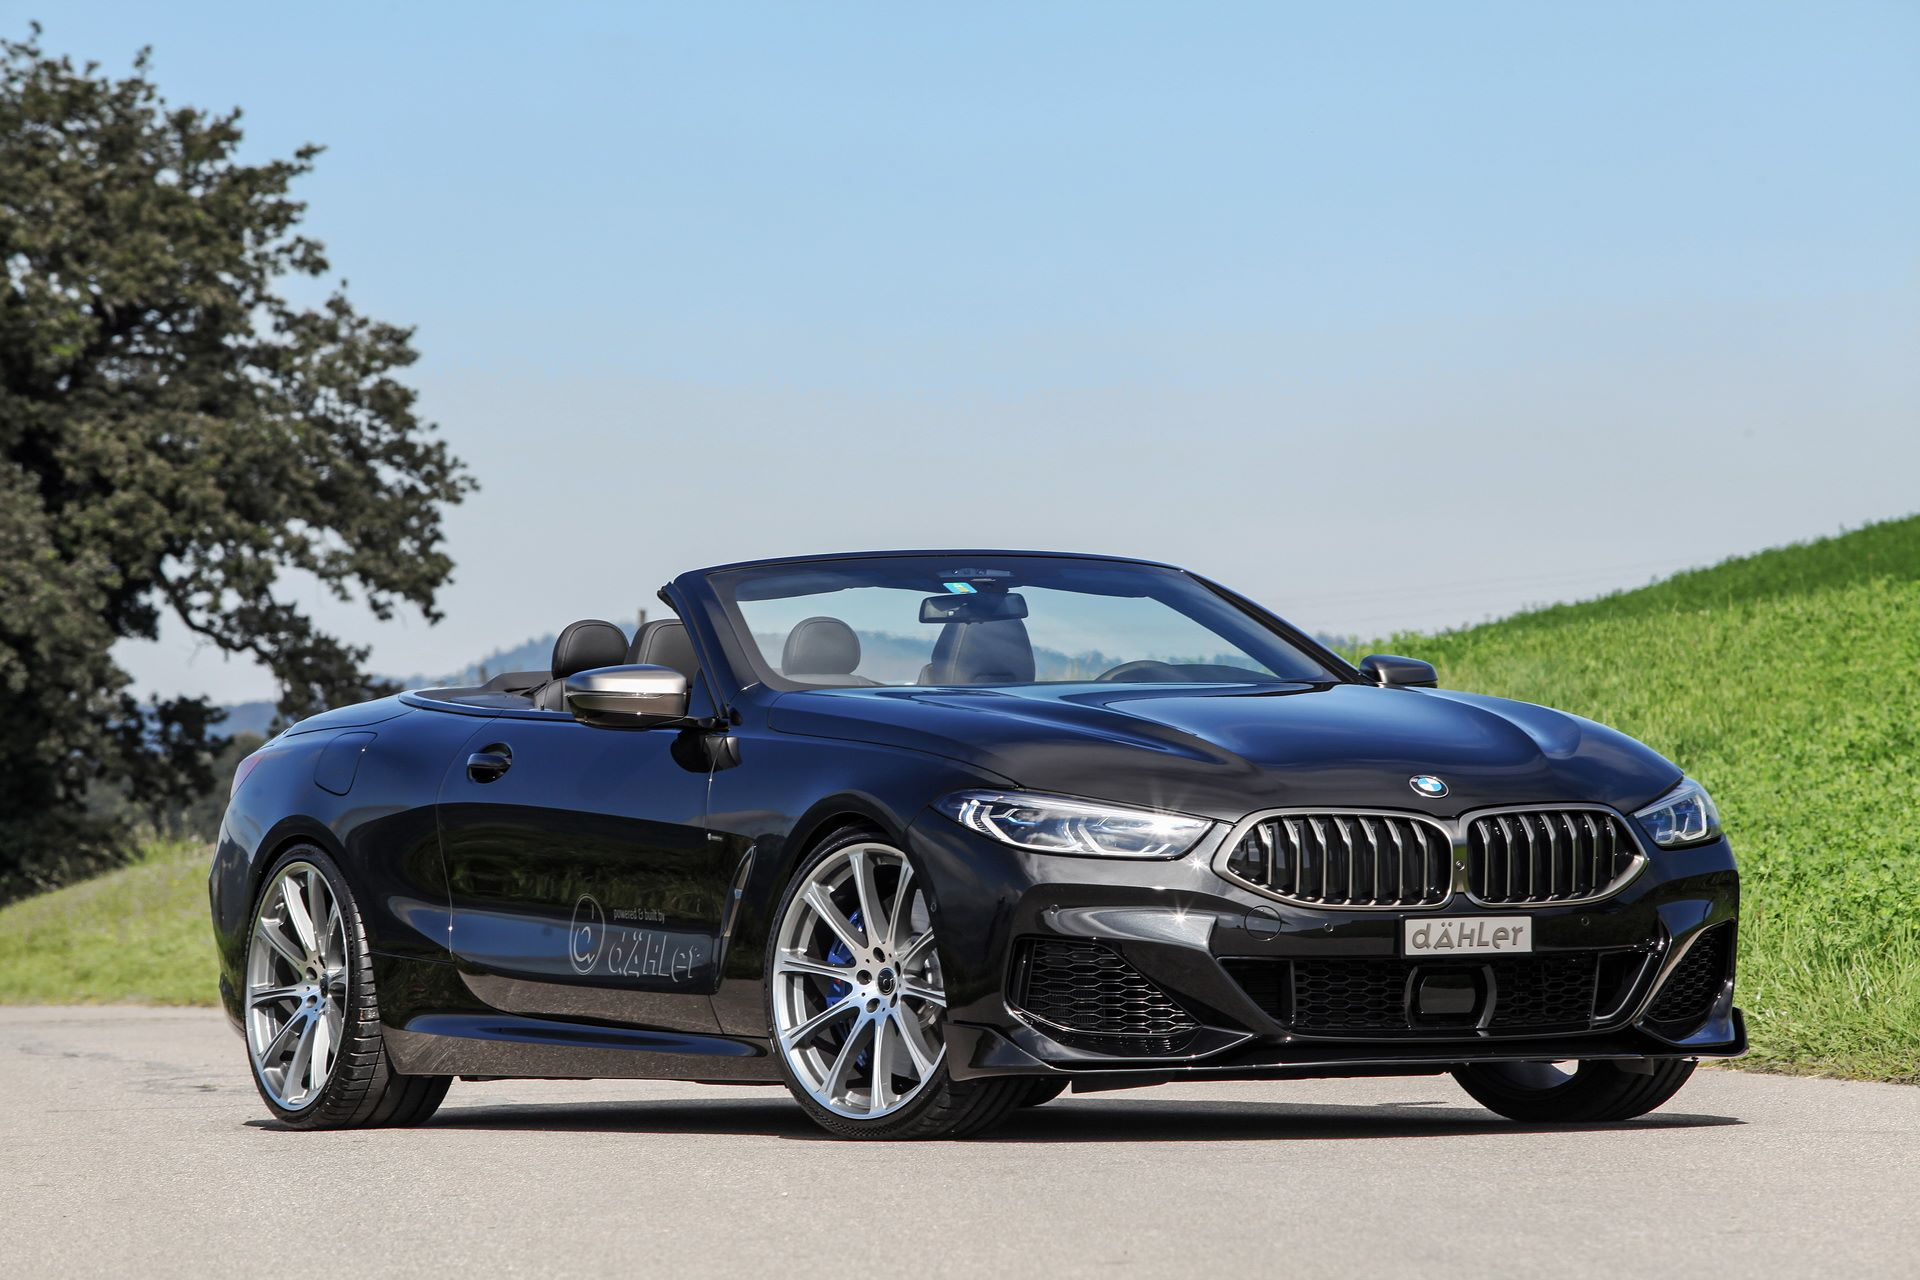 BMW-M850i-convertible-by-Dahler-8